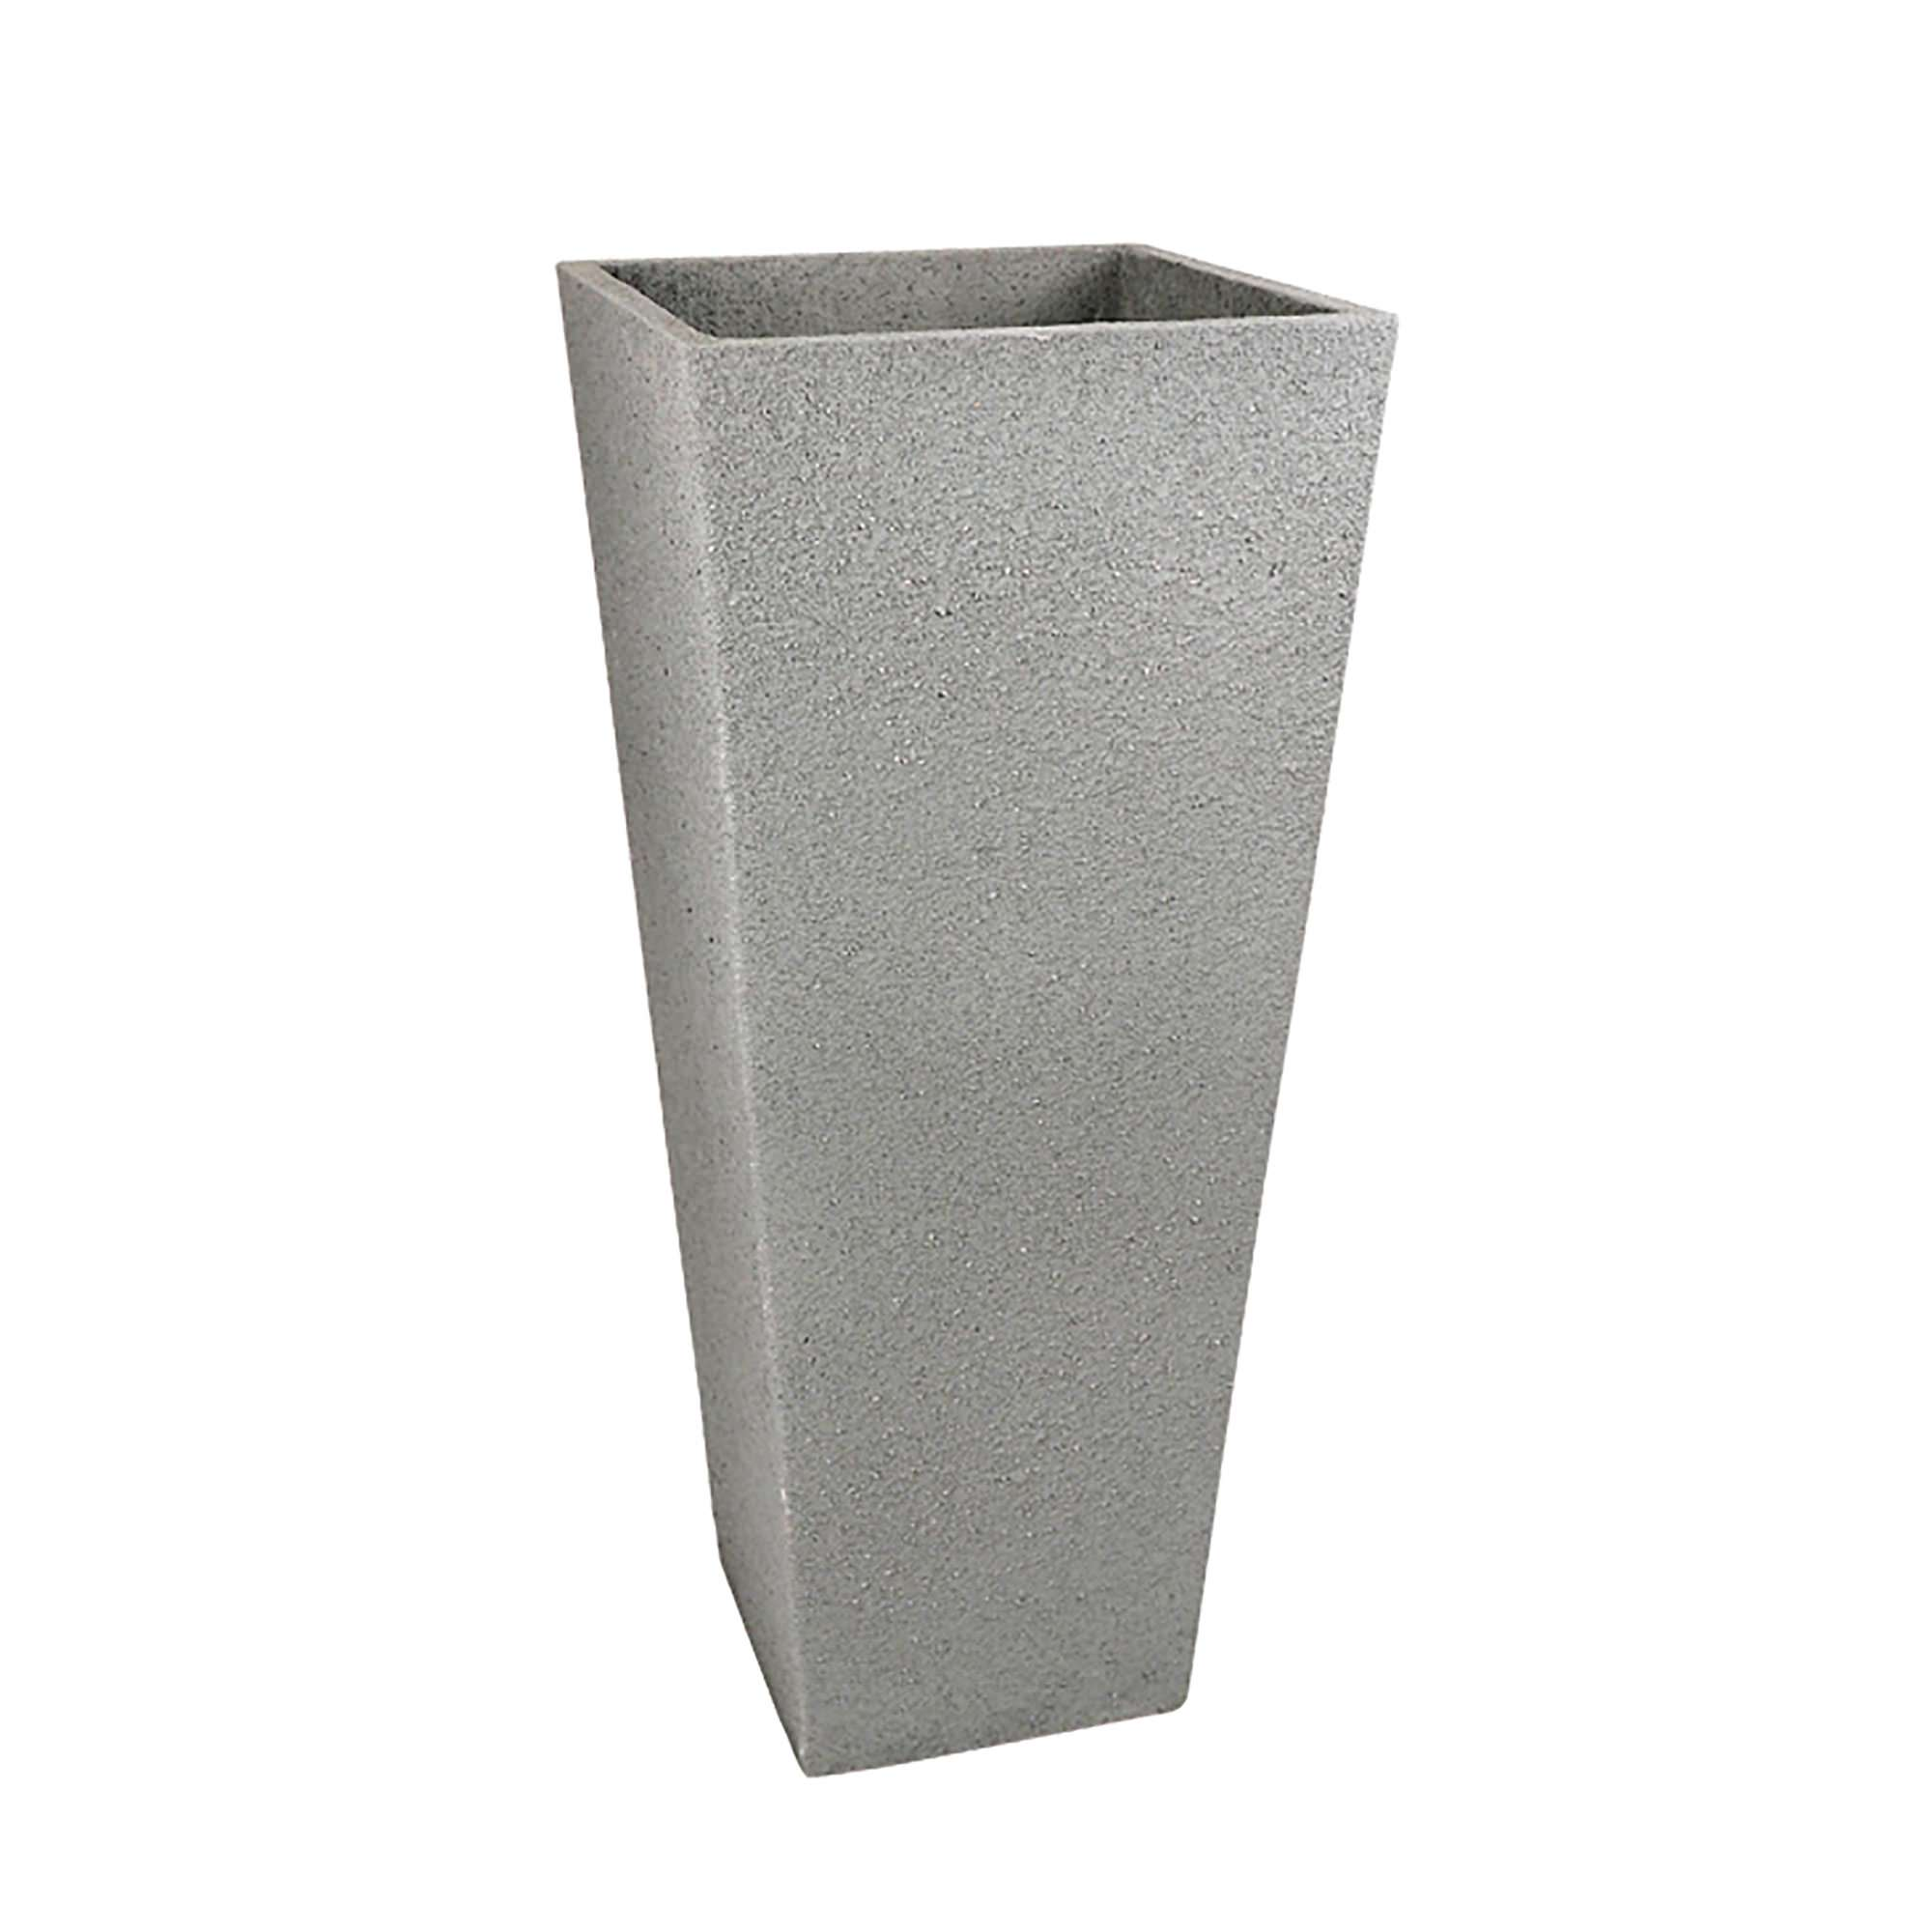 ... 37 In. Tall Square Fiberclay Outdoor Patio Planter Pot Available In  Cream Grey Or Anthracite